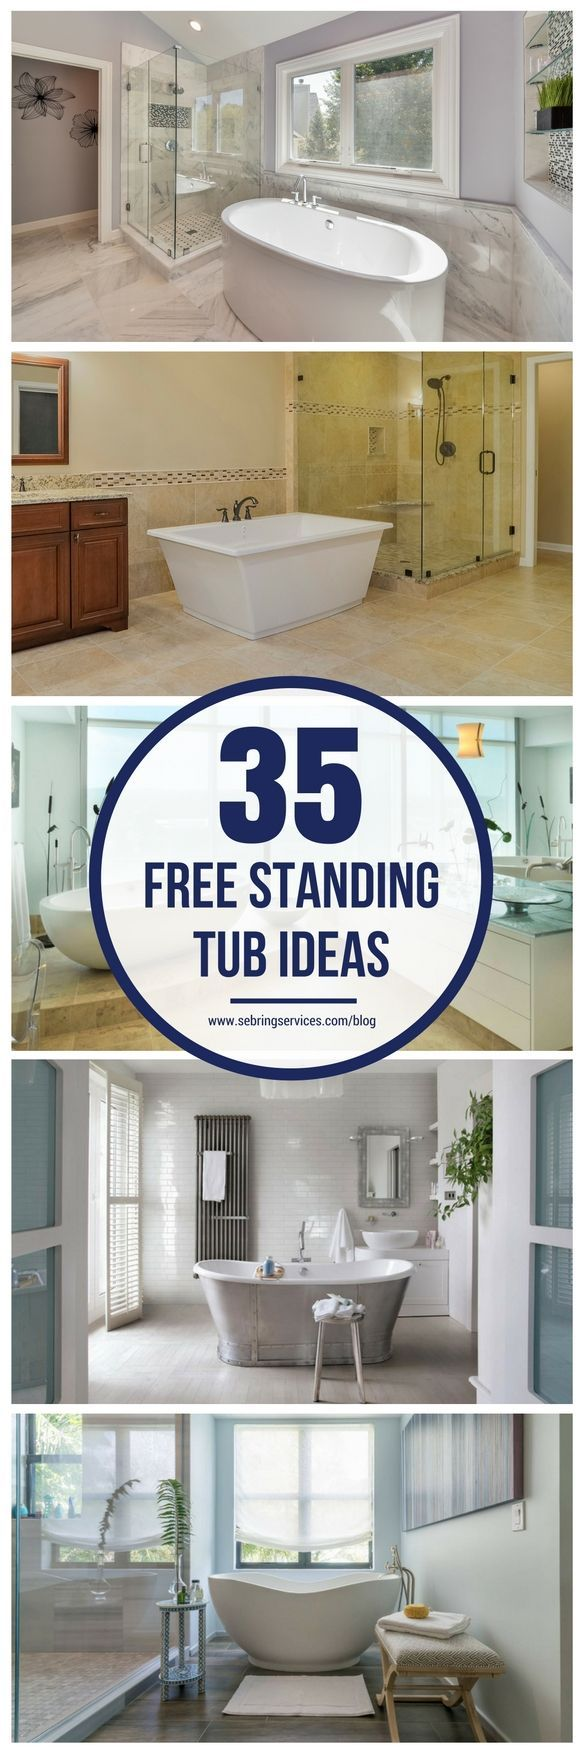 If you are considering a bathroom remodel; changing the bathtub (or introducing one) is one of the best ways to create a fresh look and change the feel and style of the bathroom. Depending on your budget, needs, and décor preferences, there are different types of bathtubs you can get. One of the most popular is the freestanding tub.